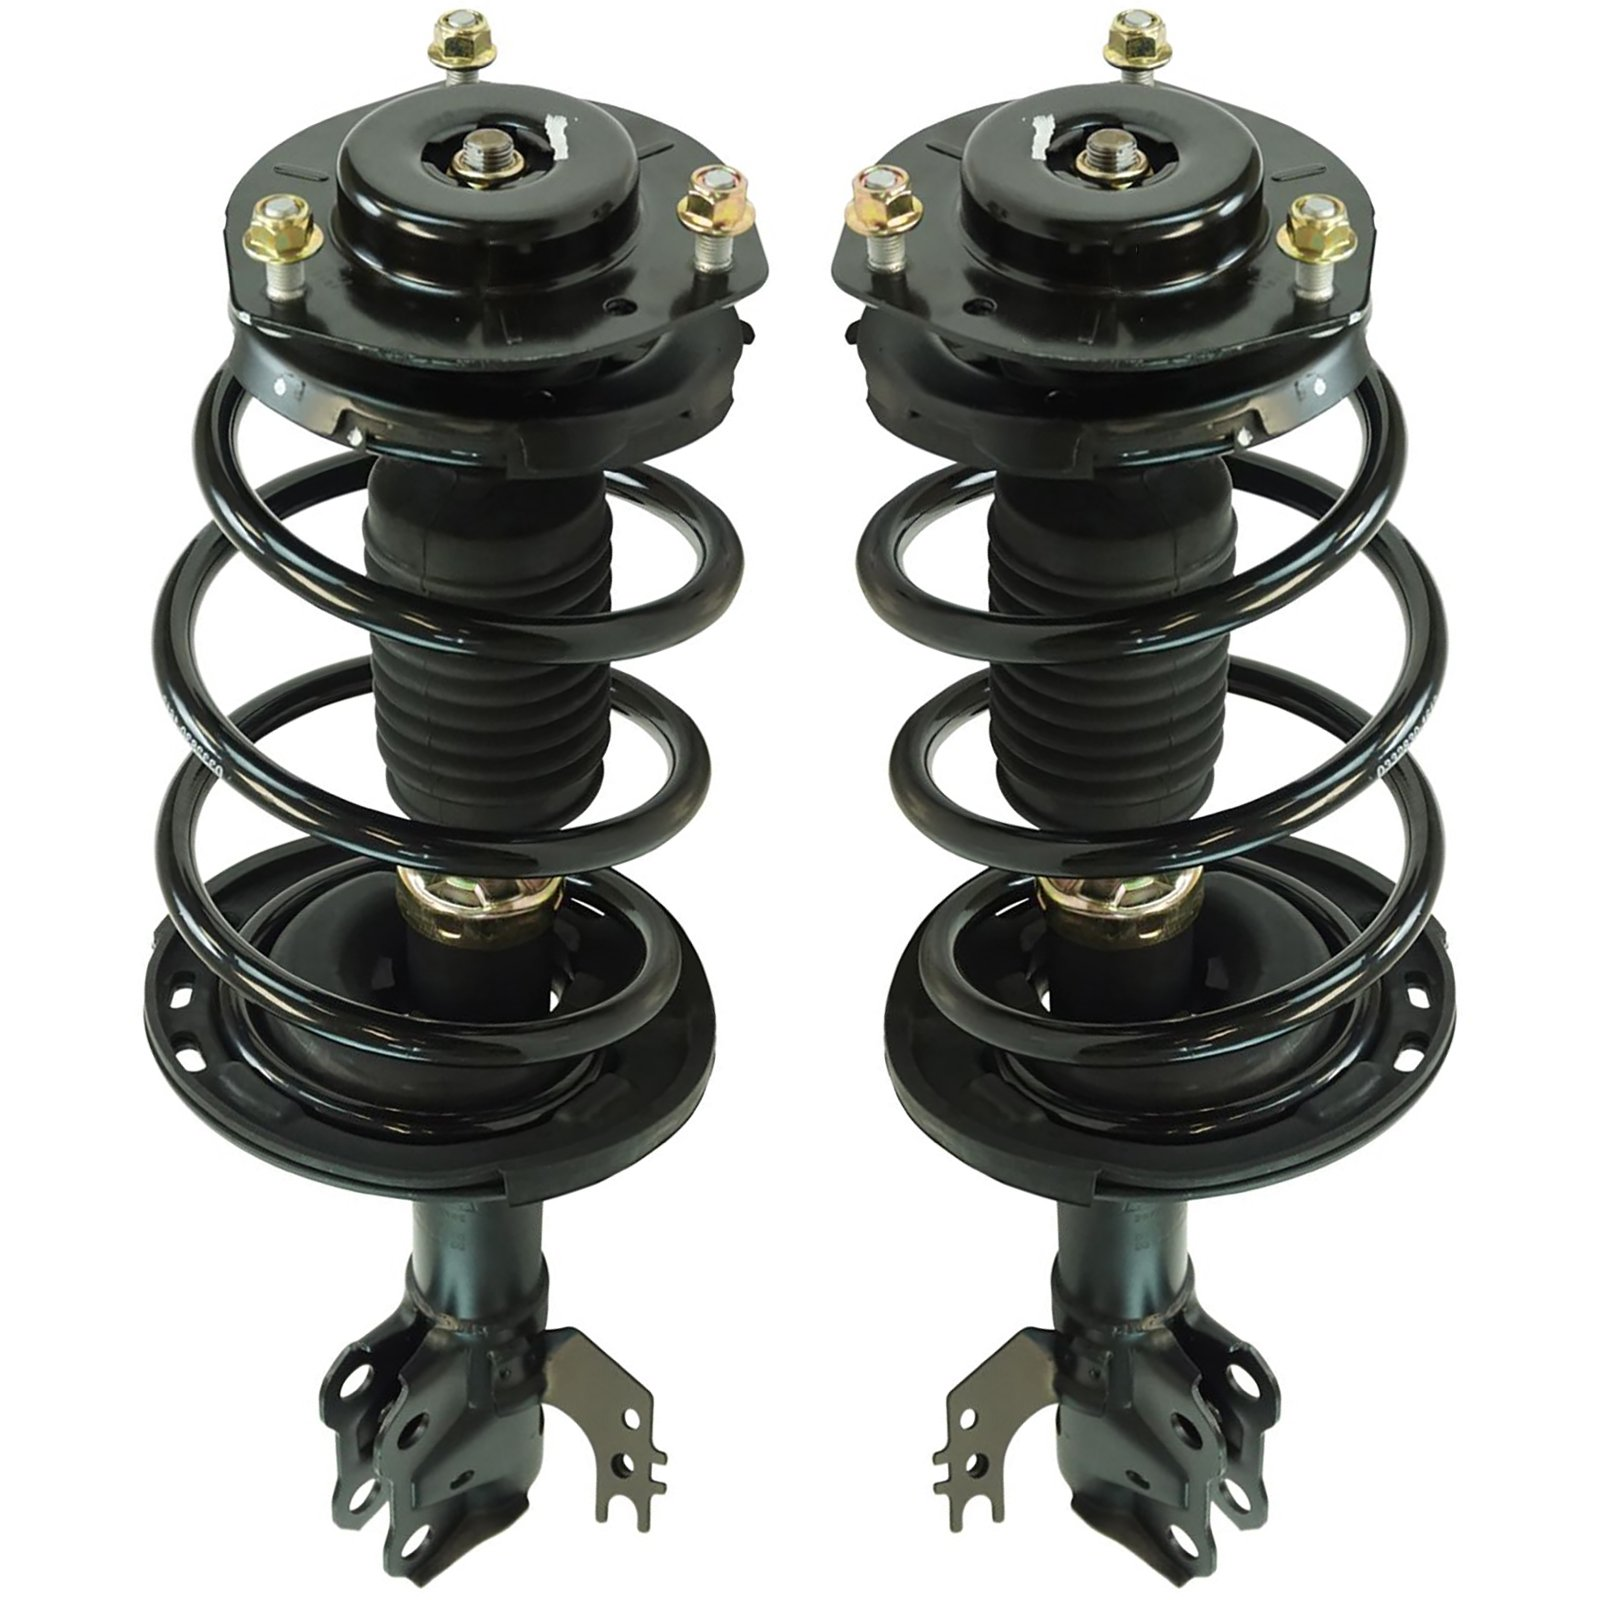 Loaded Quick Complete Strut Spring Mount Assembly LH RH Pair 2pc Front for Toyota Camry